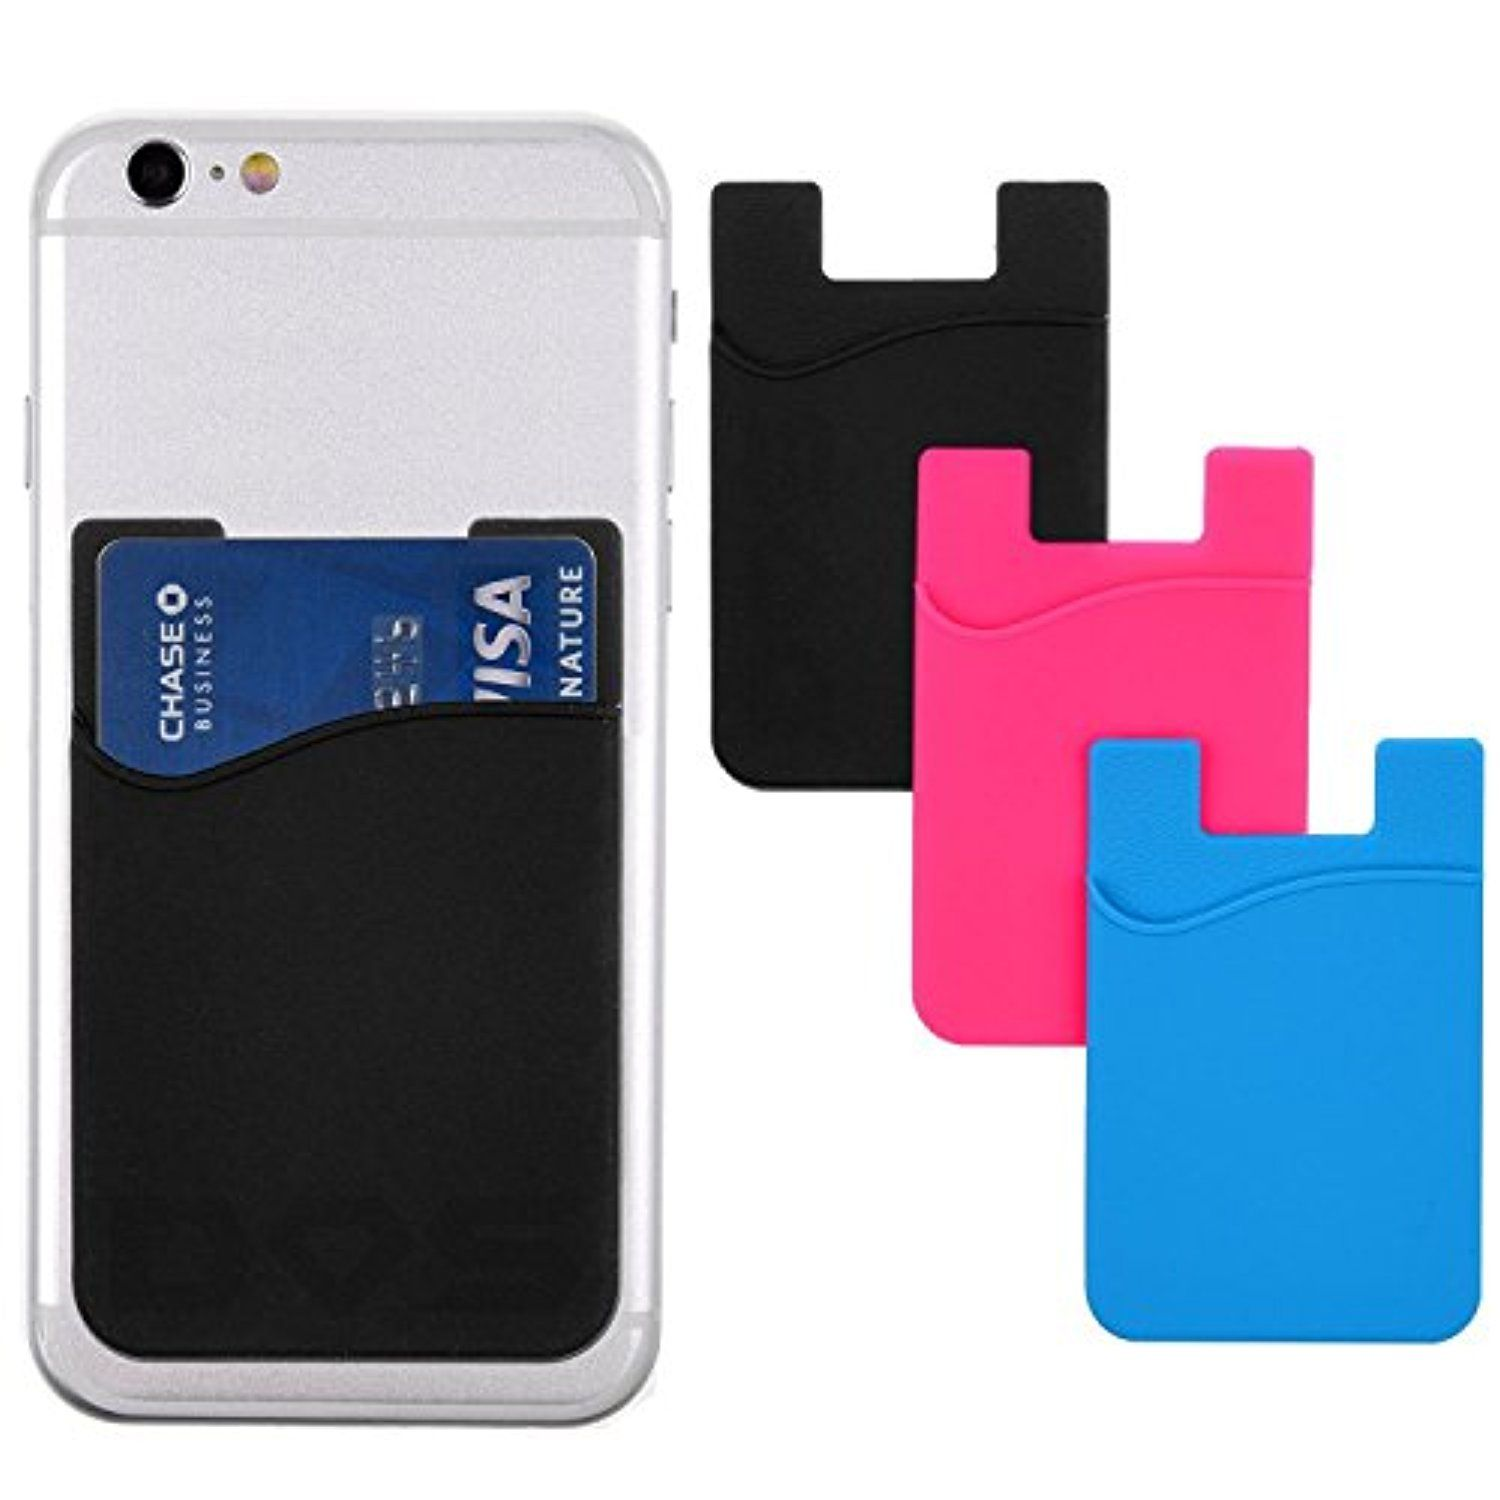 Stick-On Wallet - ID/Credit Card Holder For Phones - Strong 3M ...